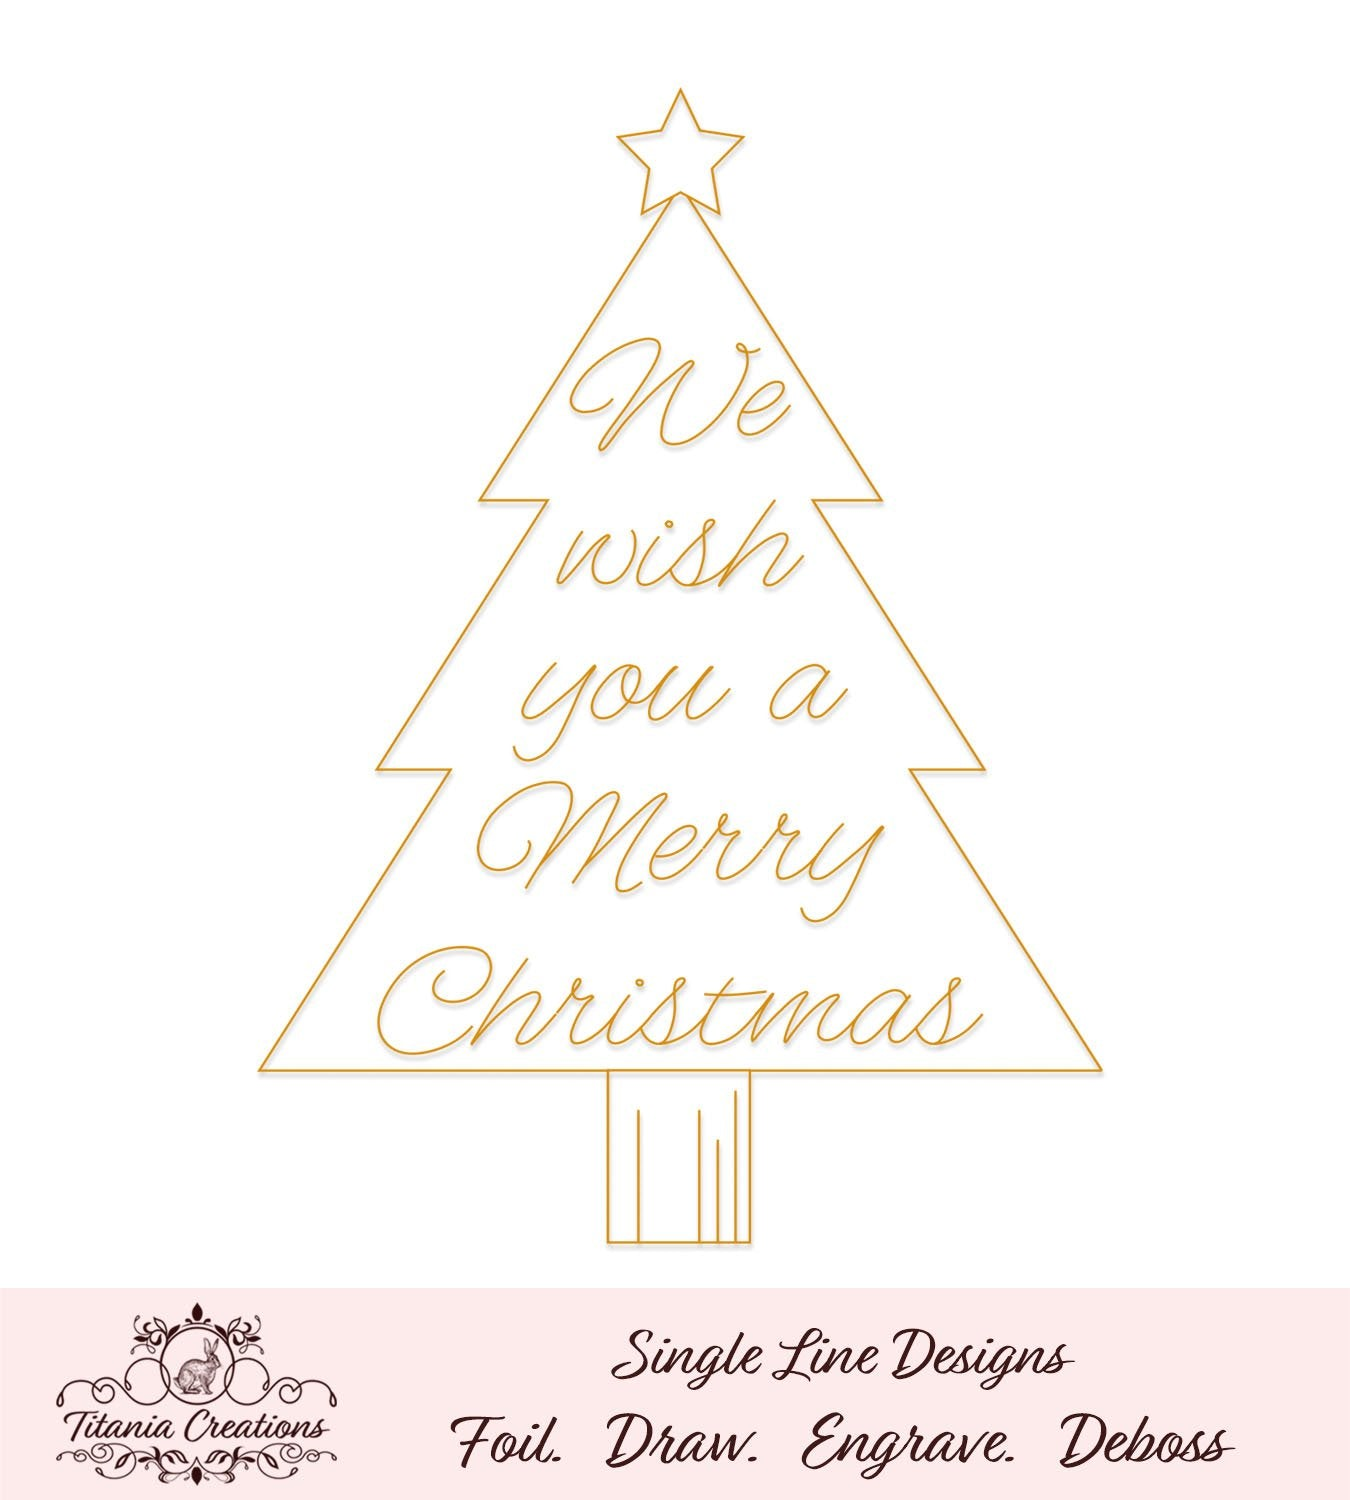 Single Line We Wish You A Merry Christmas Tree Foil Quill Svg Titania Creations